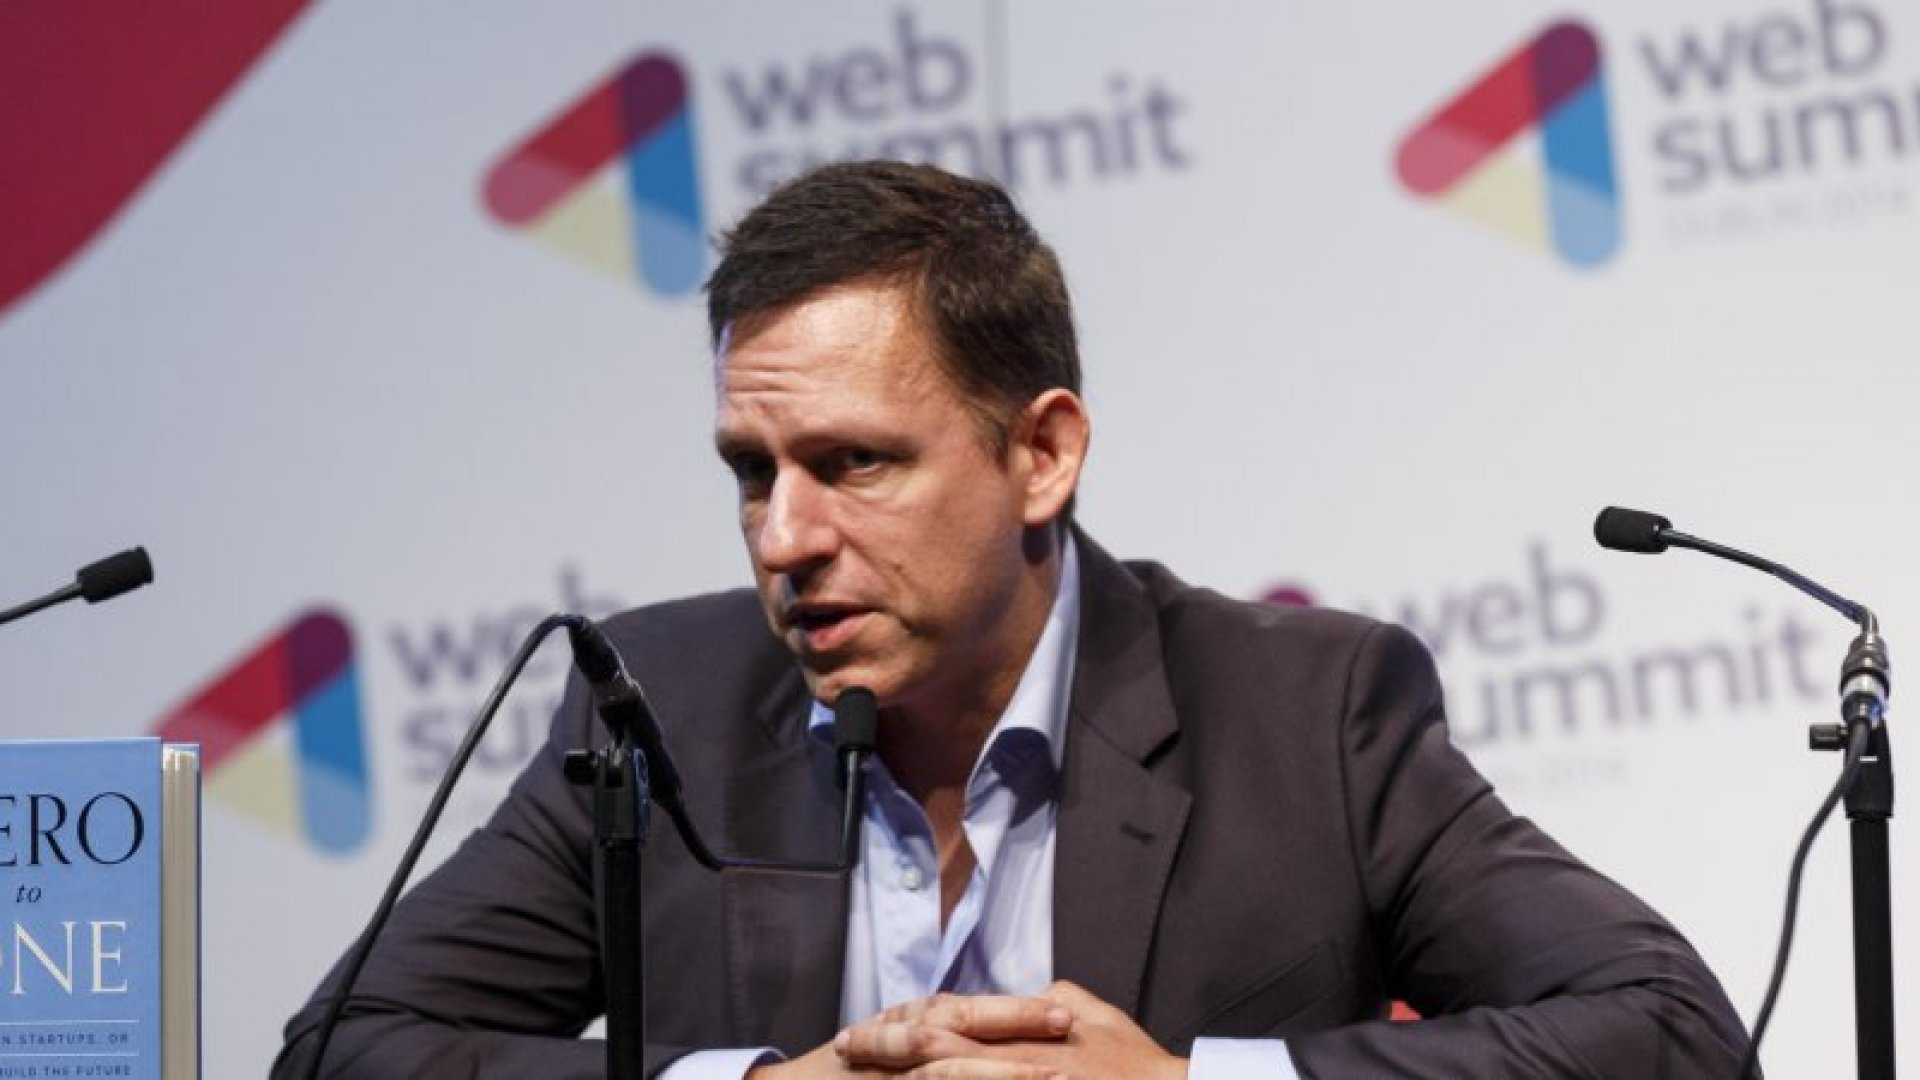 Peter Thiel Echoes Branson and Musk: 'Don't Ask For Permission, Ask For Forgiveness'